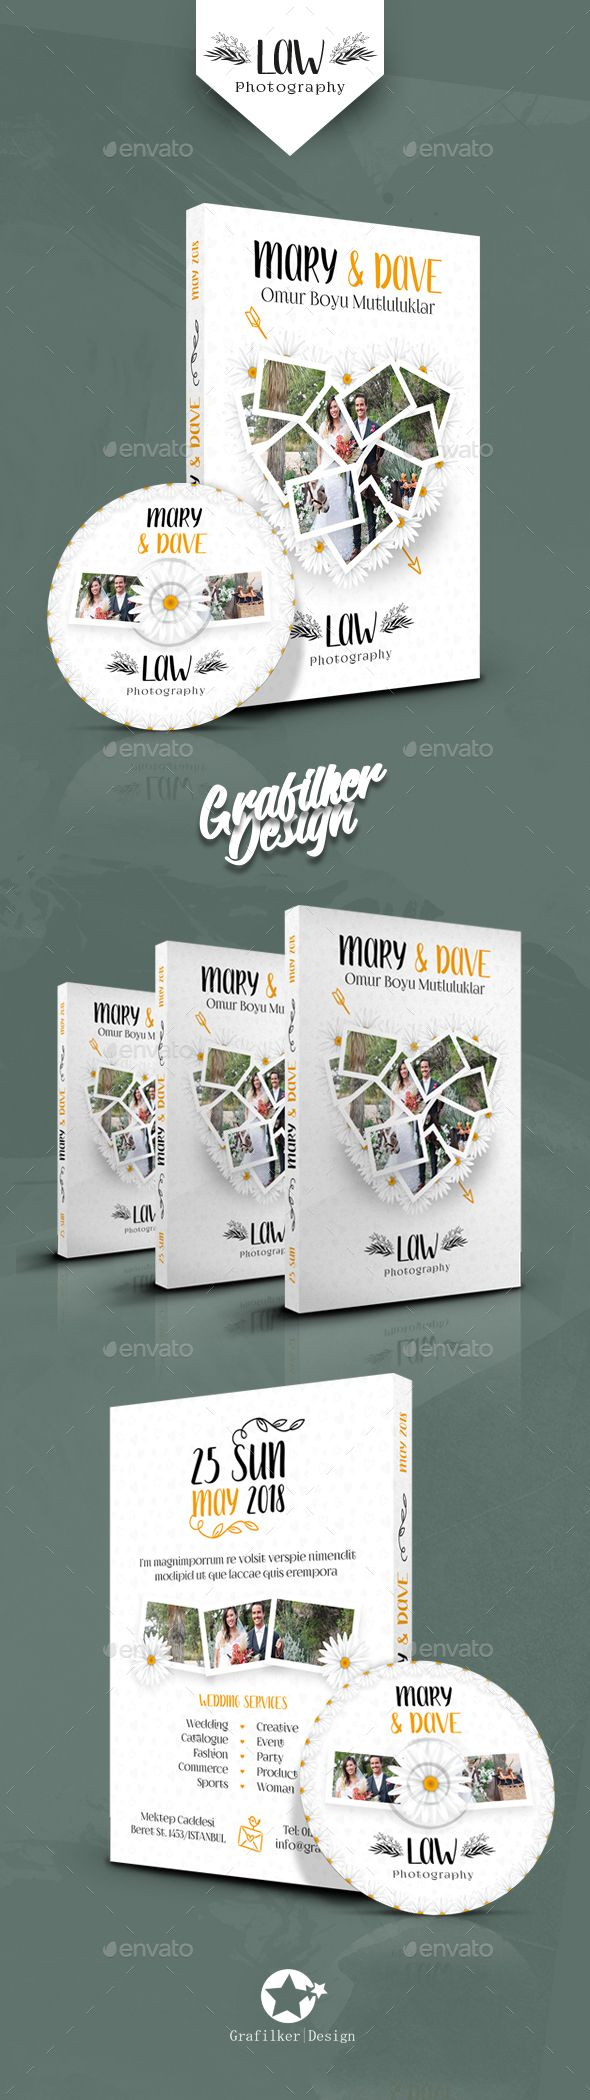 Wedding Dvd Cover Templates | Template, Font logo and Logos